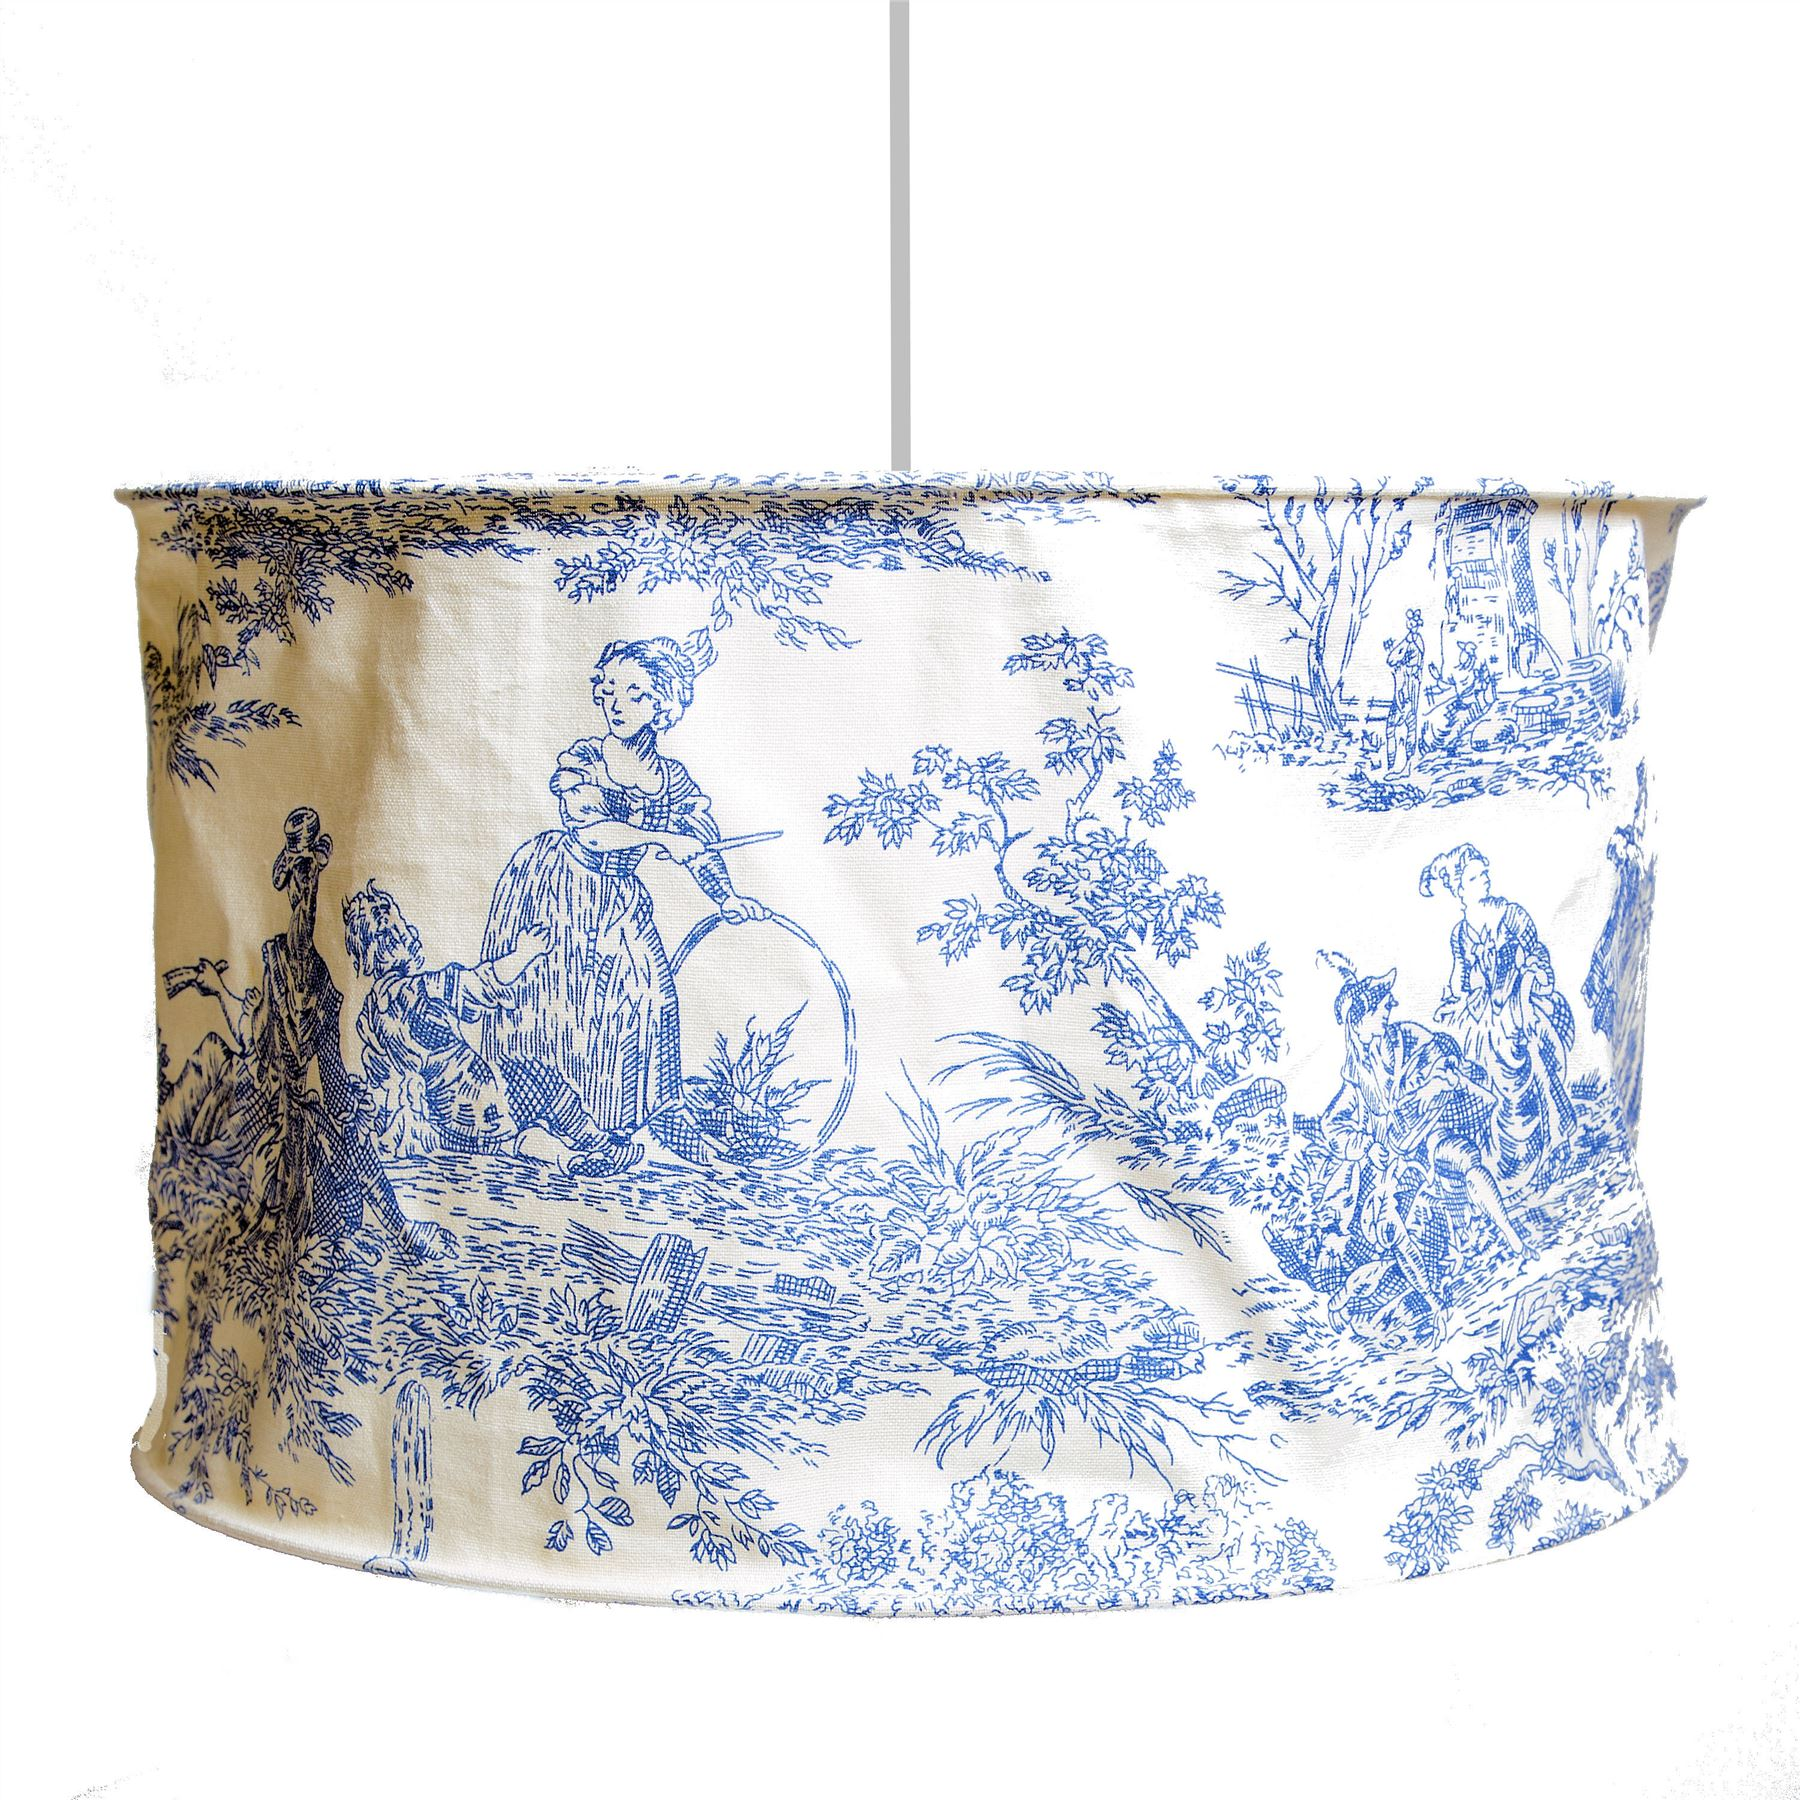 Ceiling Lamp Shade Materials: LARGE FABRIC CEILING LIGHT/LAMP SHADE PENDANT BEDROOM